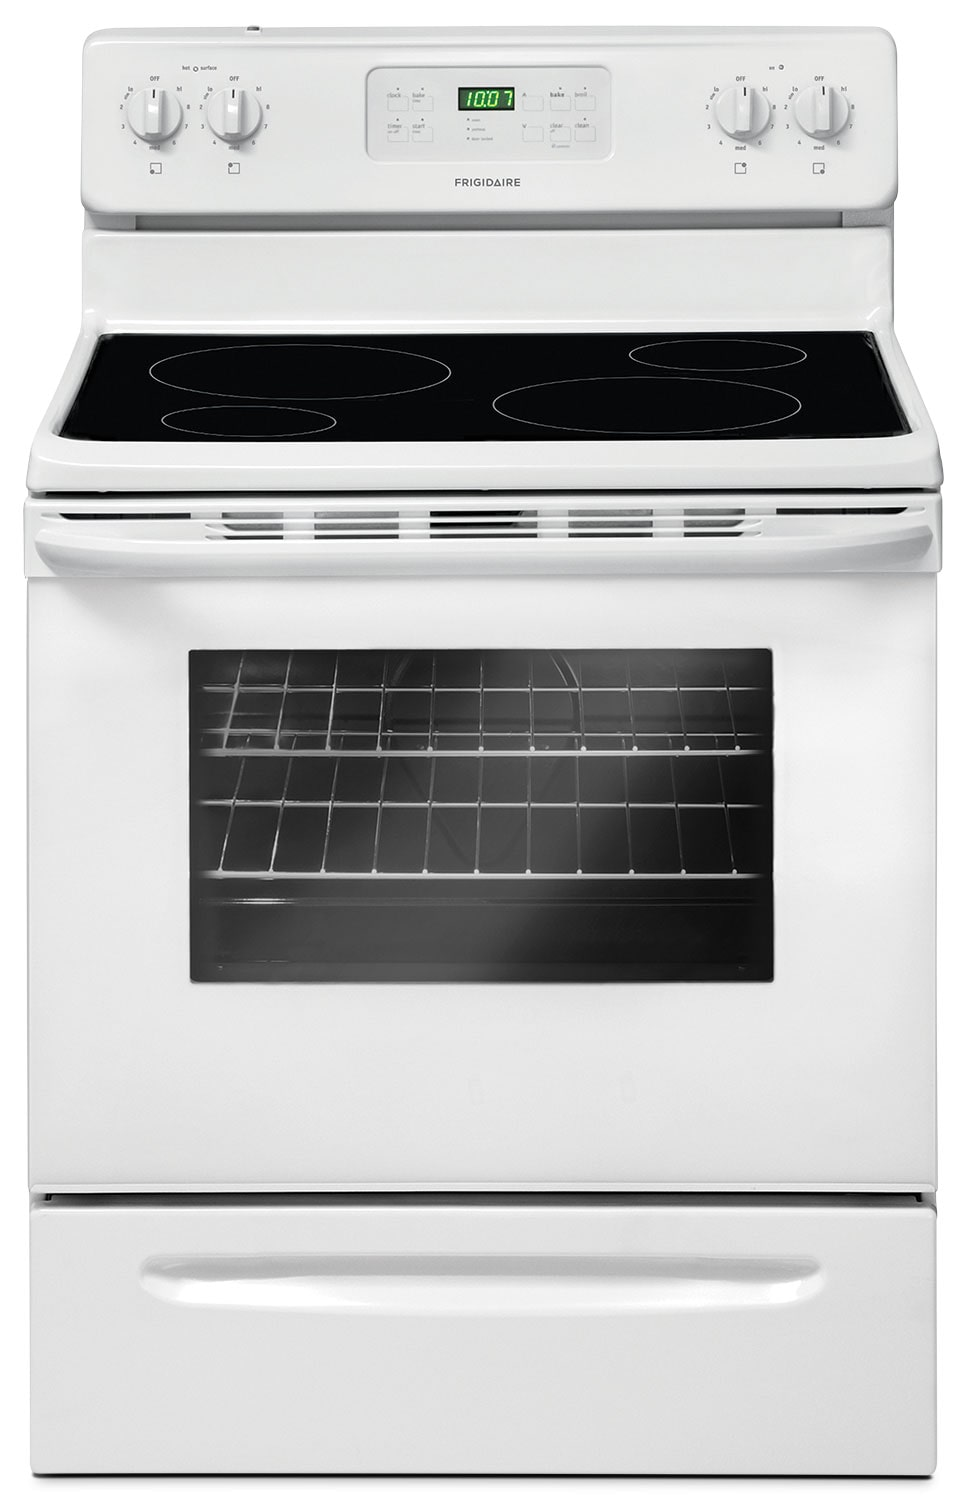 Frigidaire 5.3 Cu. Ft. Freestanding Electric Range – CFEF3014TW